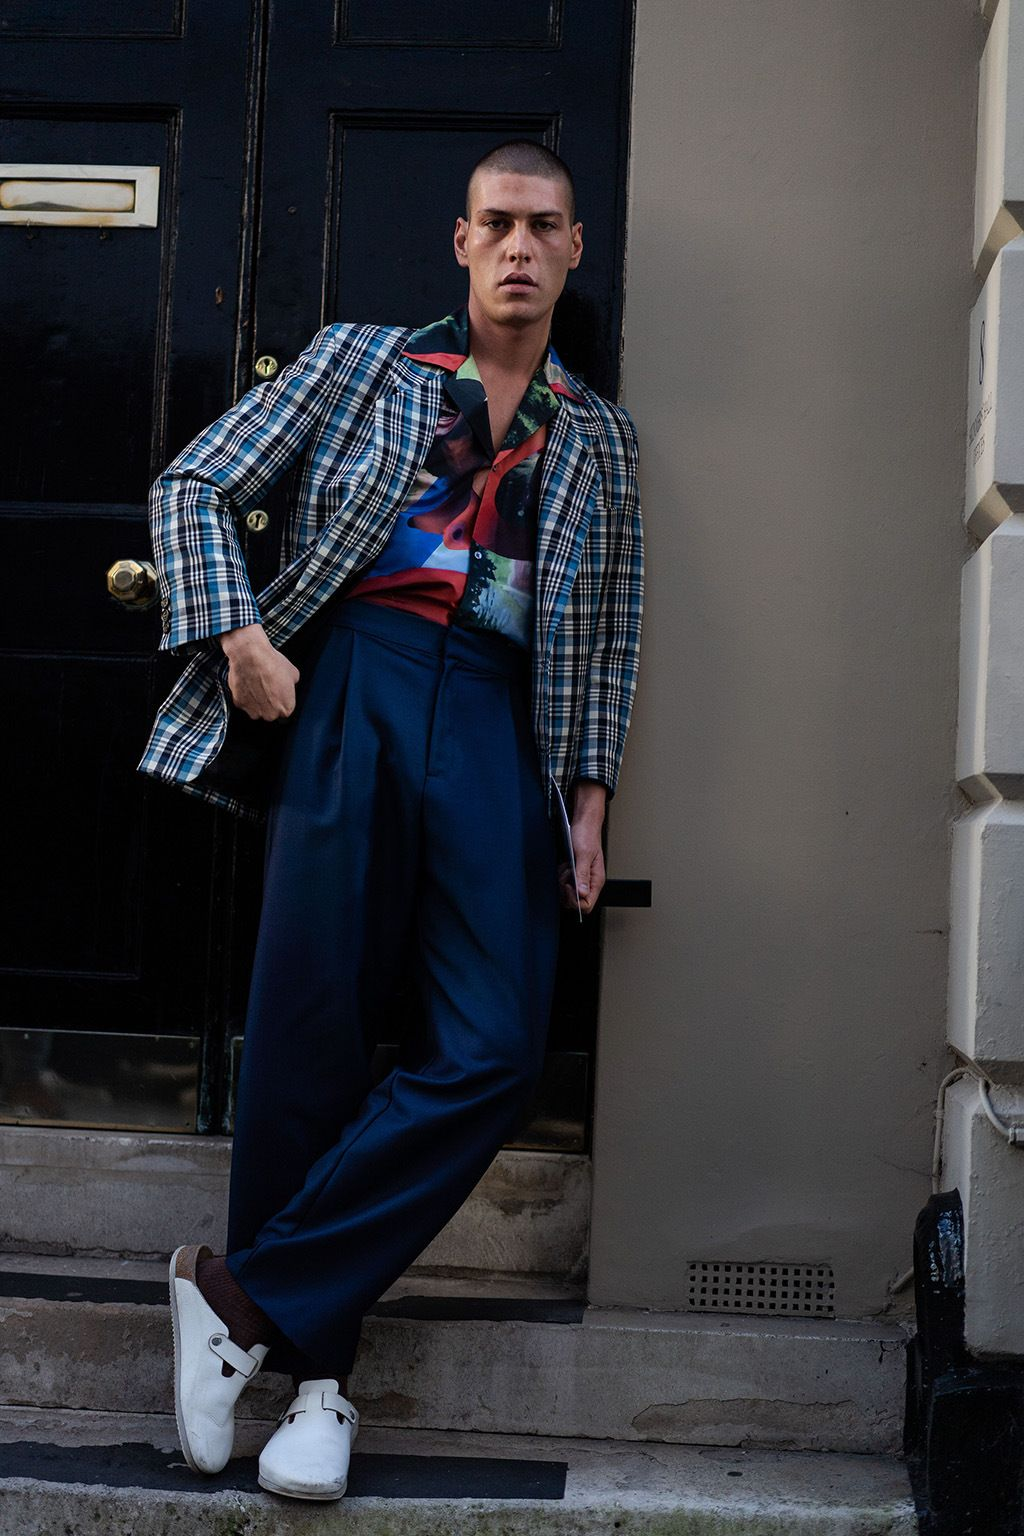 Standout Street Style Looks At London Fashion Week Men S Fall 20 In 2020 London Fashion Week Street Style Men Street Style London Fashion Week Mens